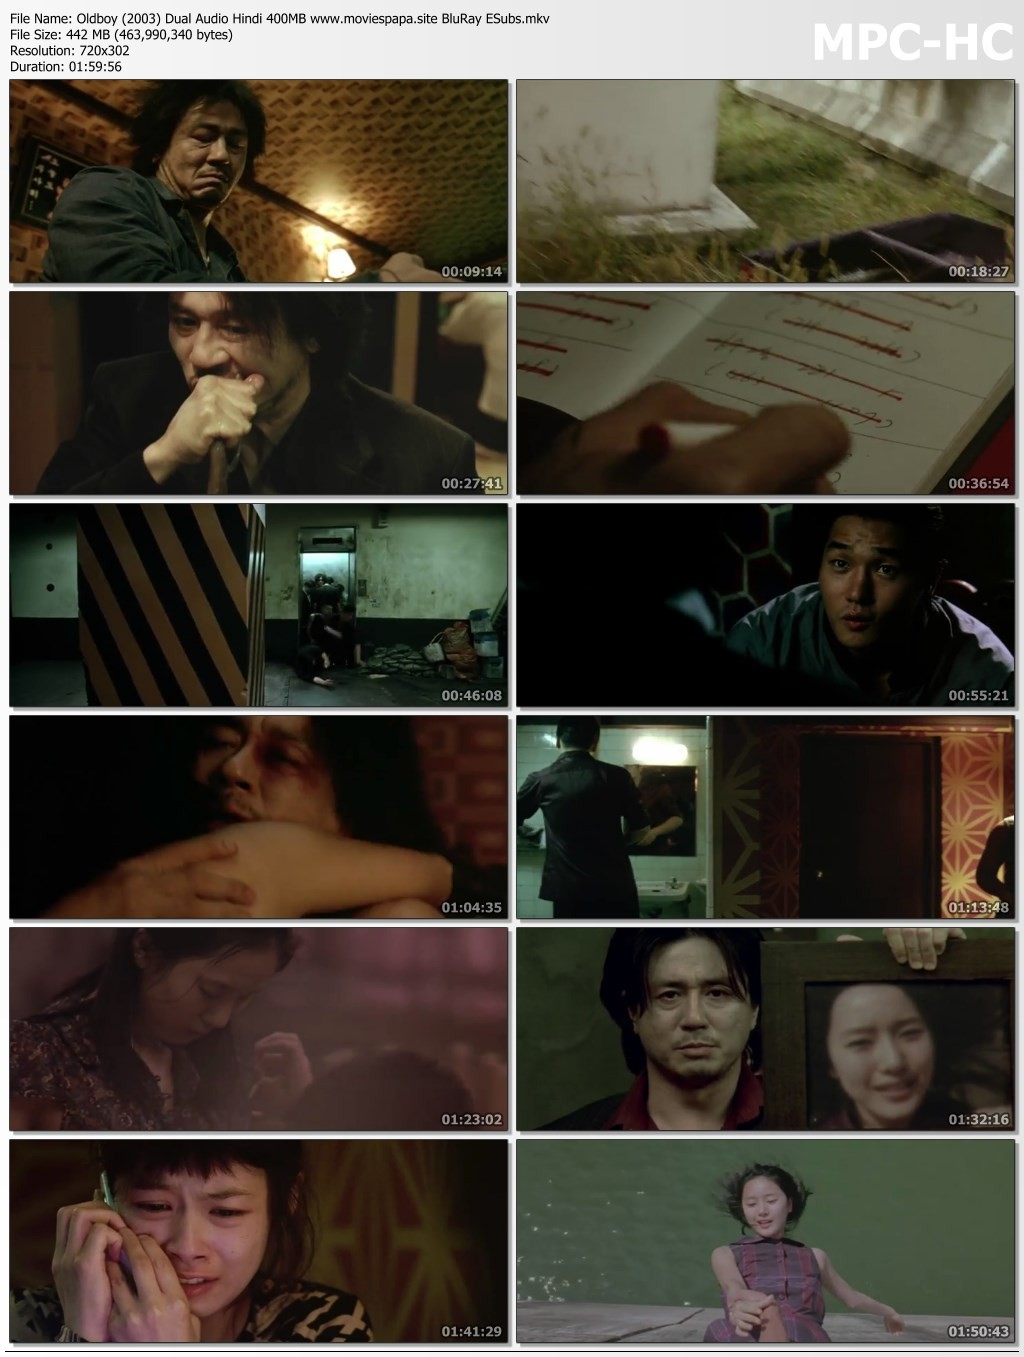 Oldboy (2003) Dual Audio Hindi 400MB BluRay ESubs Download